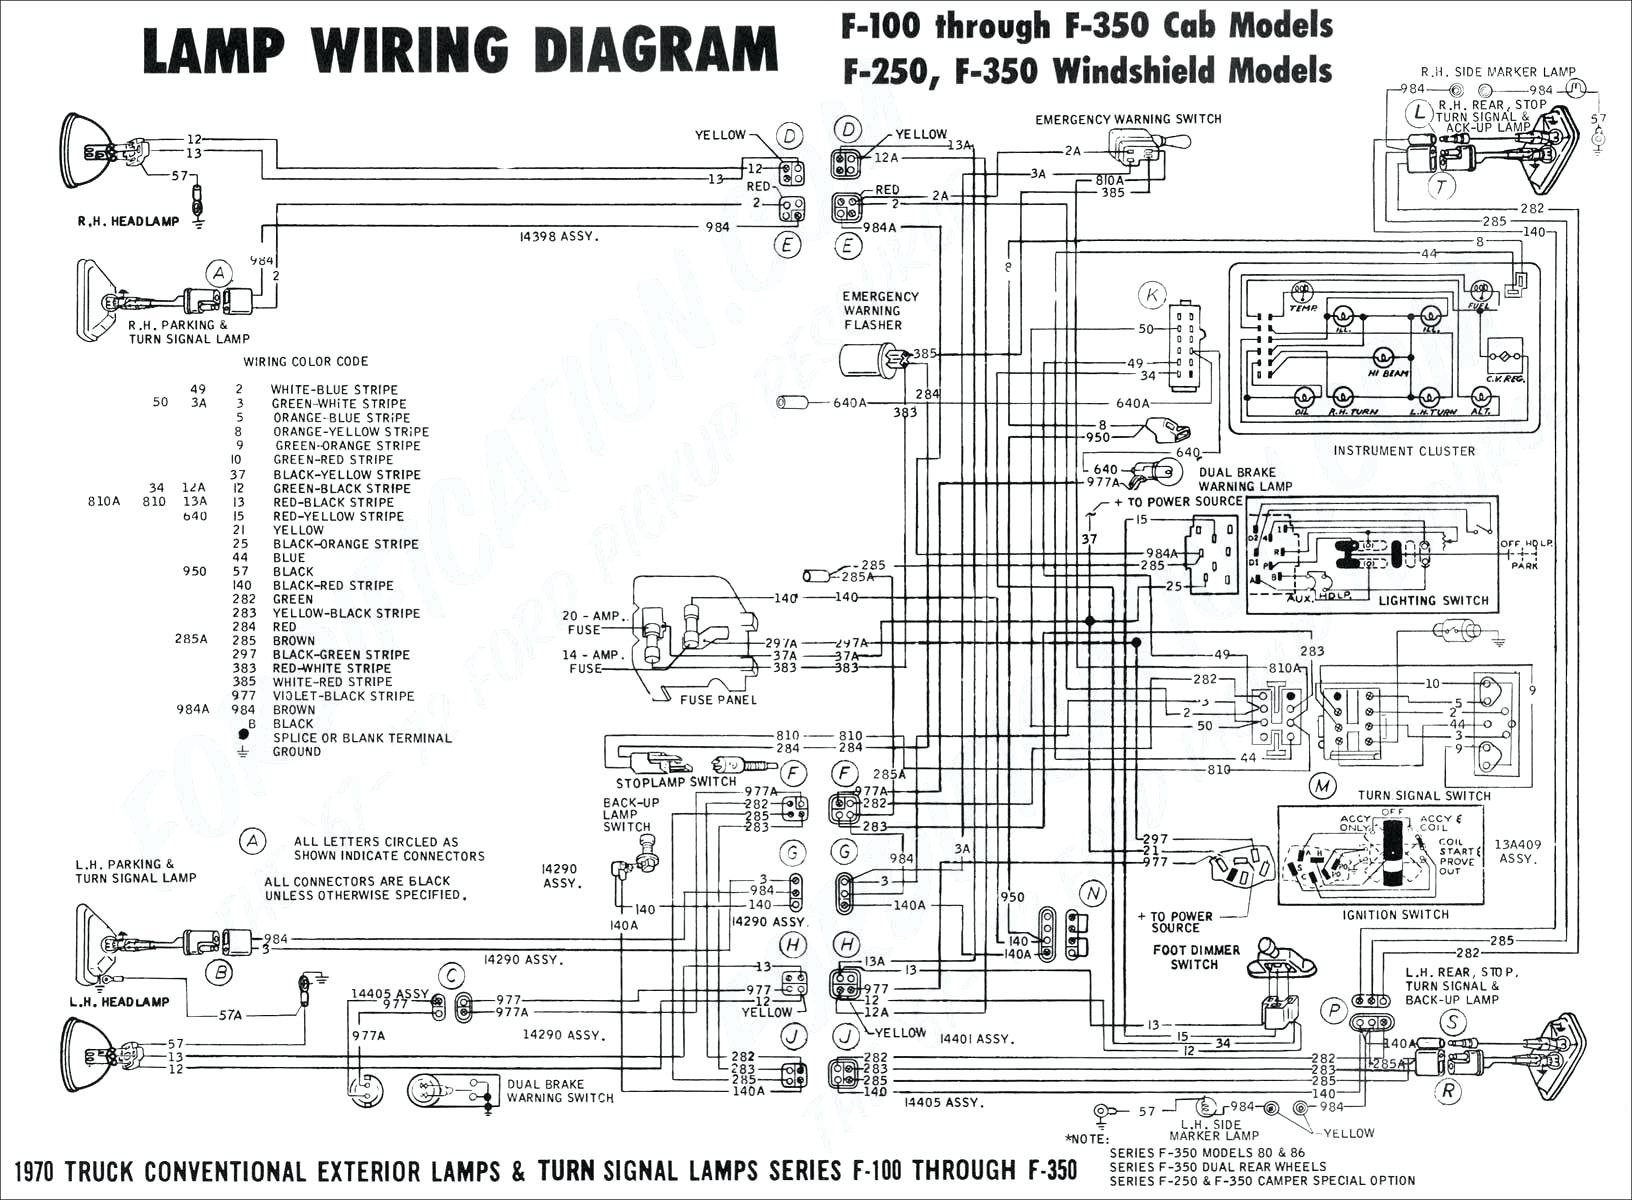 Mad Jax Inverter Wiring Diagram - Wiring Diagram Img Madjax Ezgo Txt Wiring Diagram on